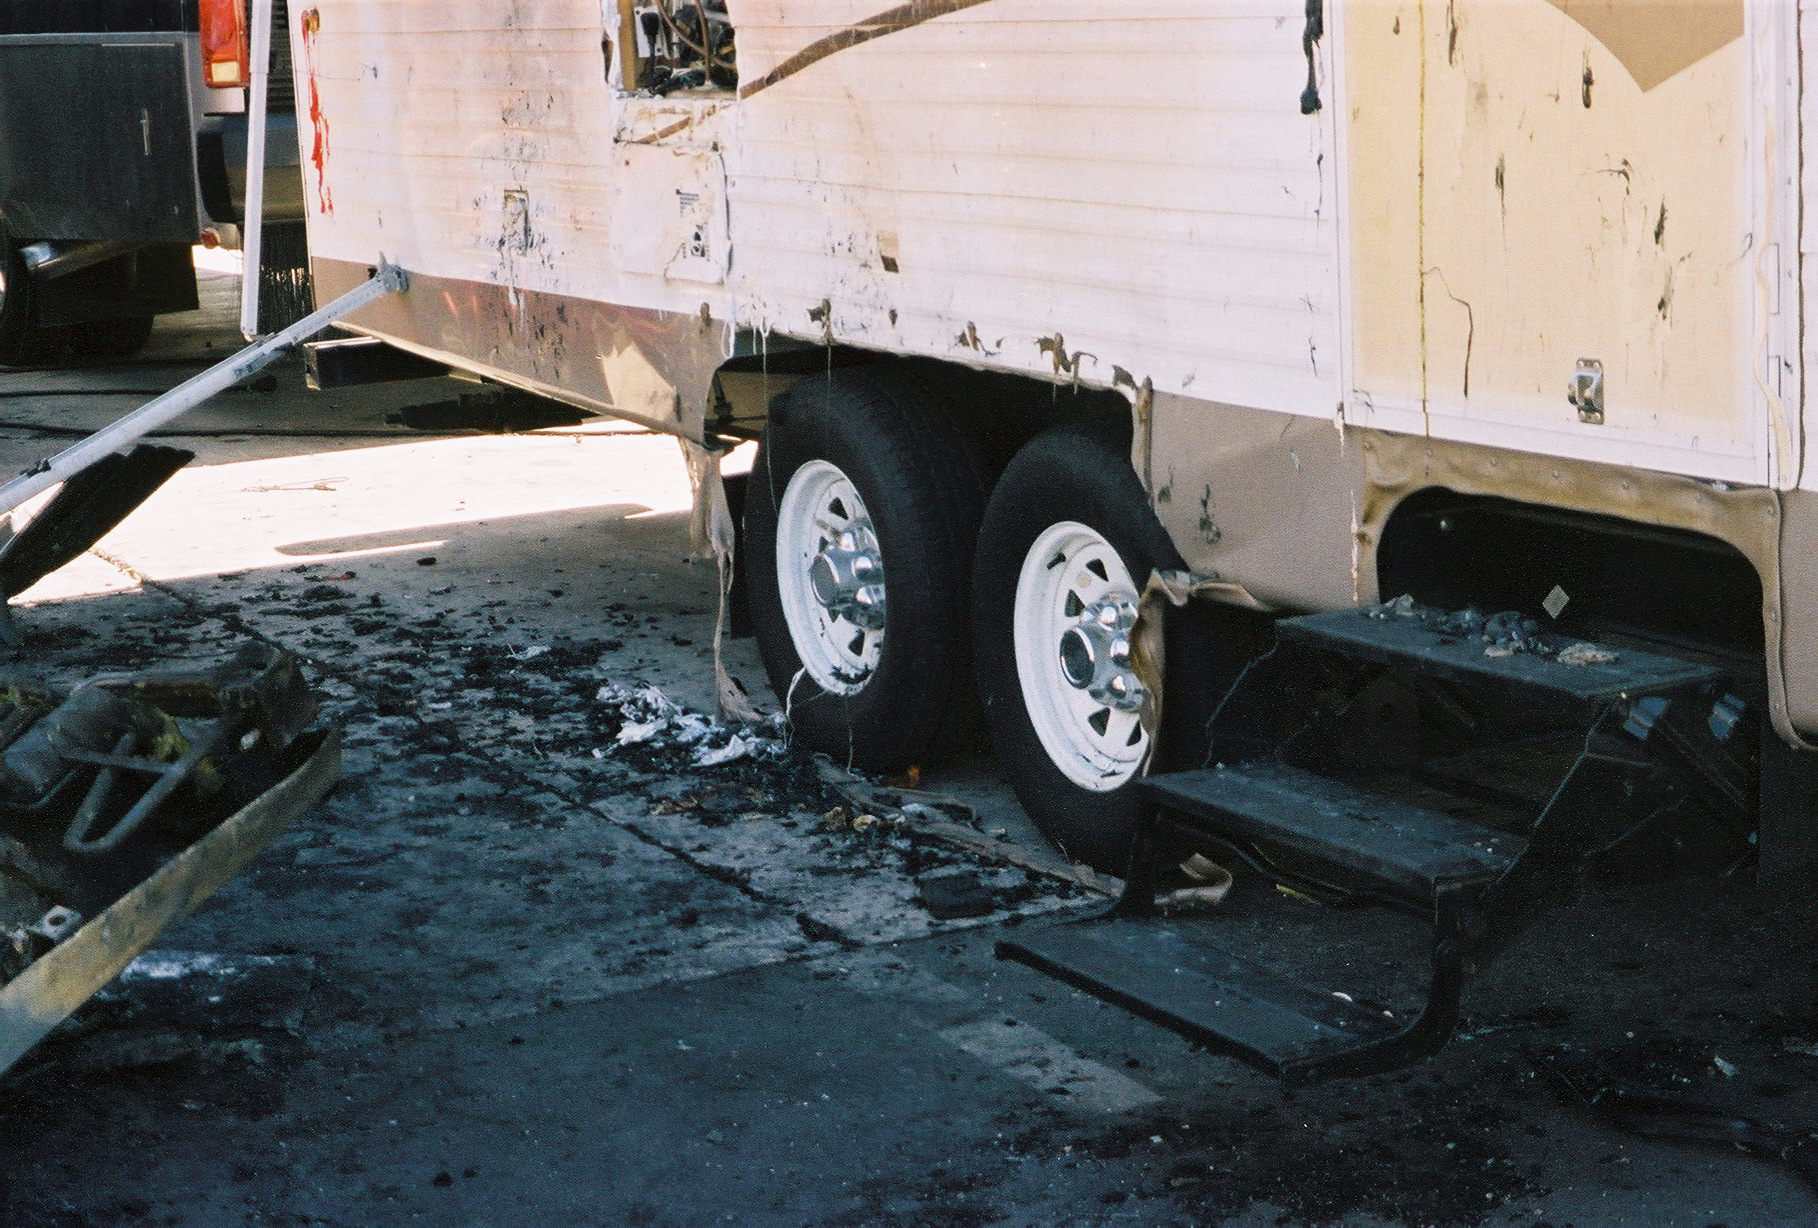 5th Wheel Trailer Destroyed In Fire